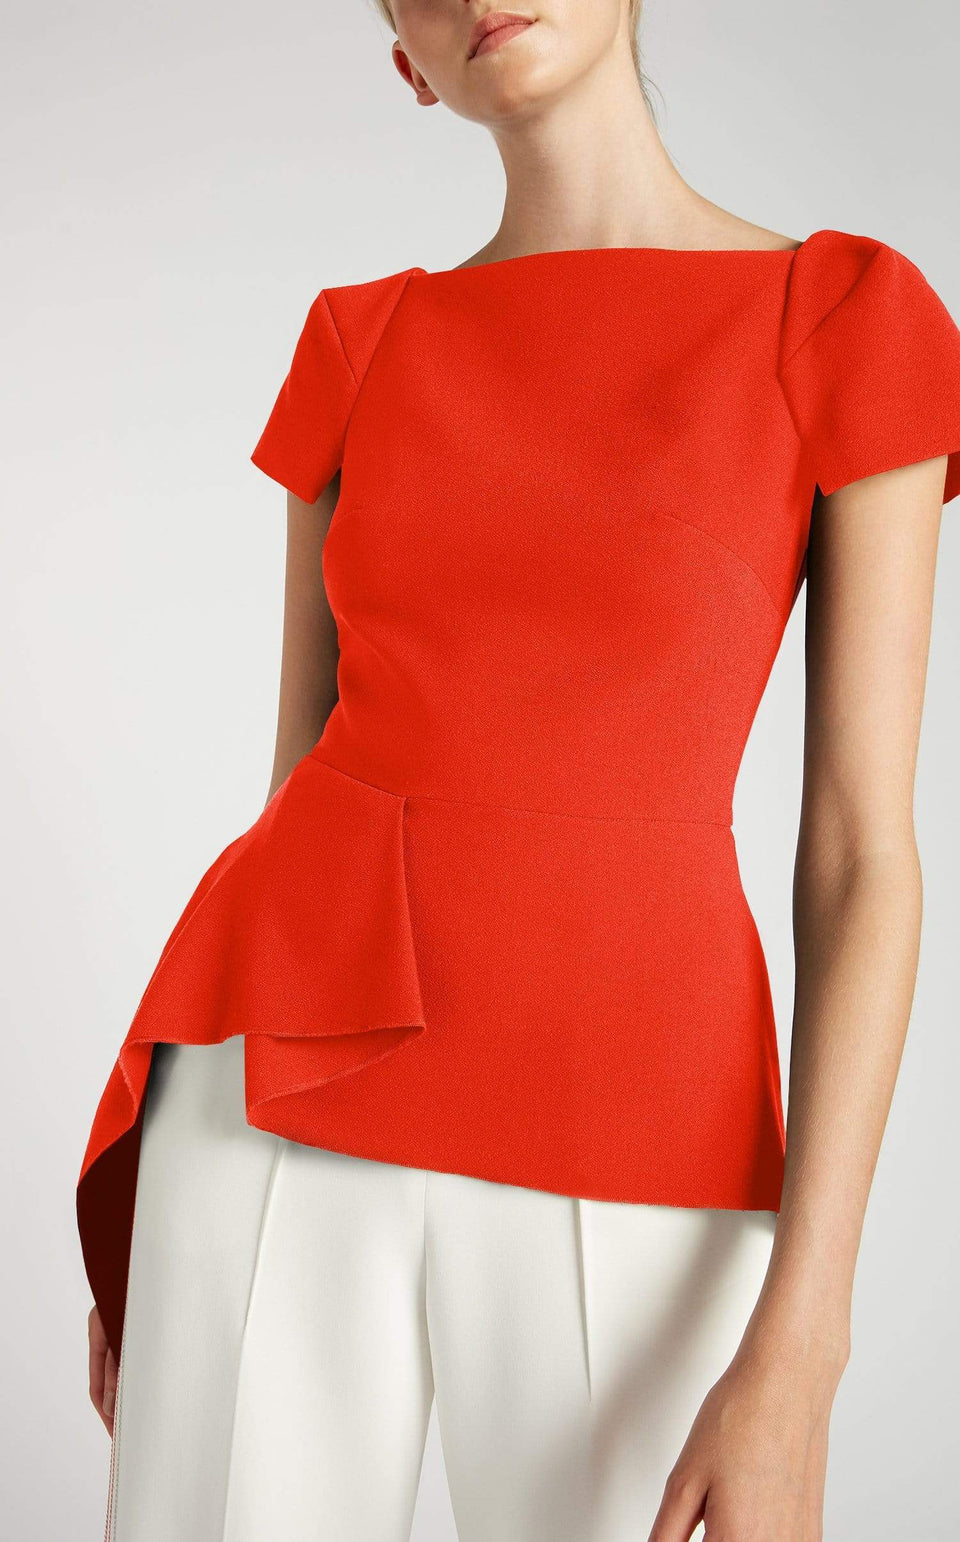 Newhall Top In Poppy Red from Roland Mouret